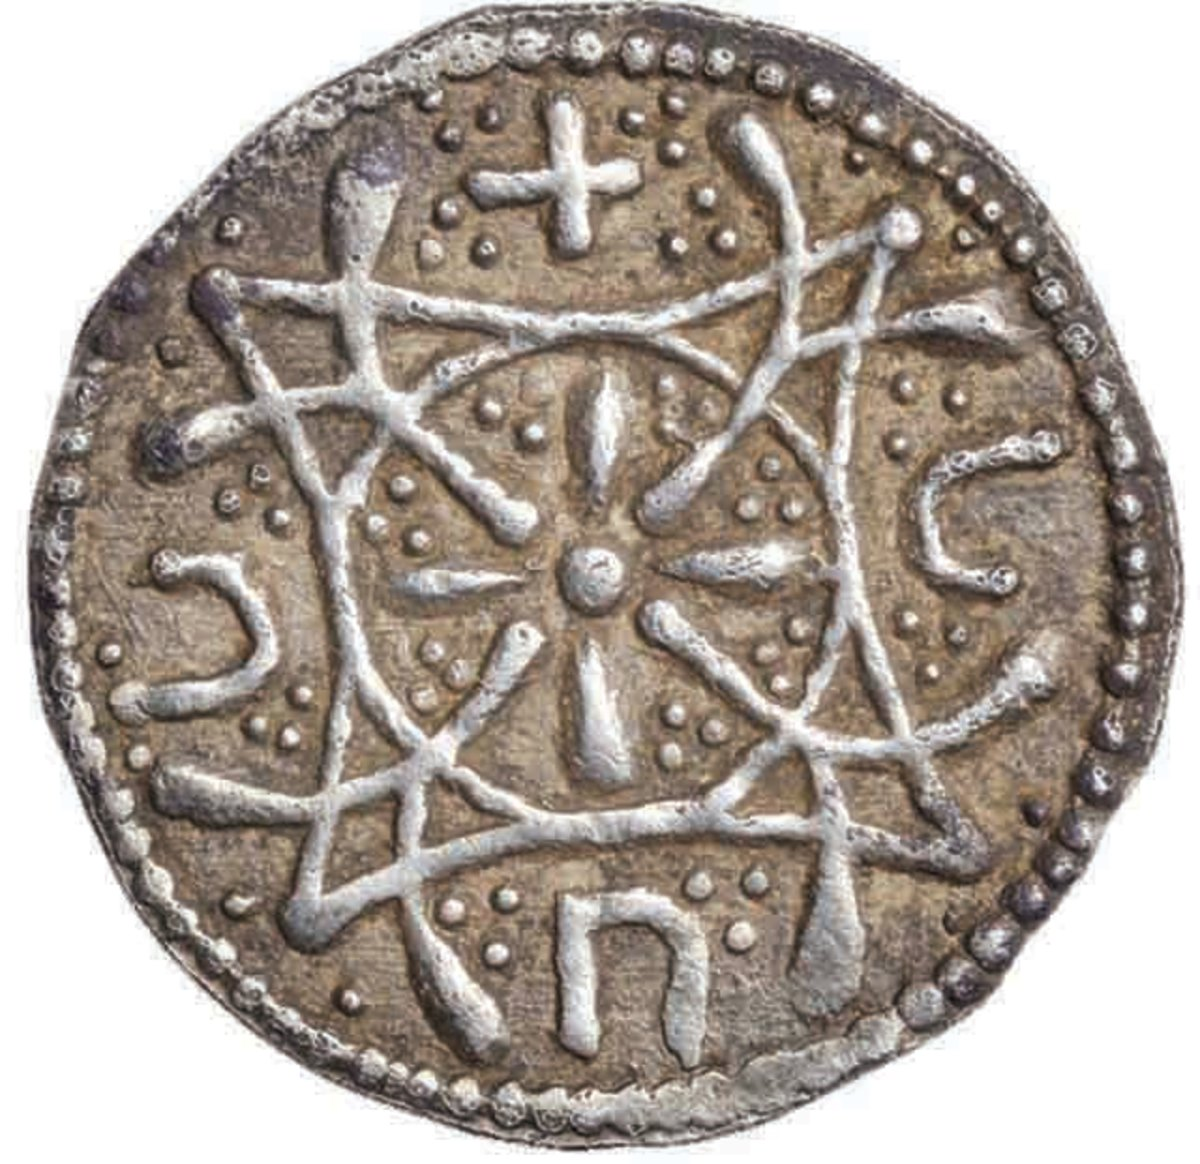 Reverse of the Anglo-Saxon silver penny at auction